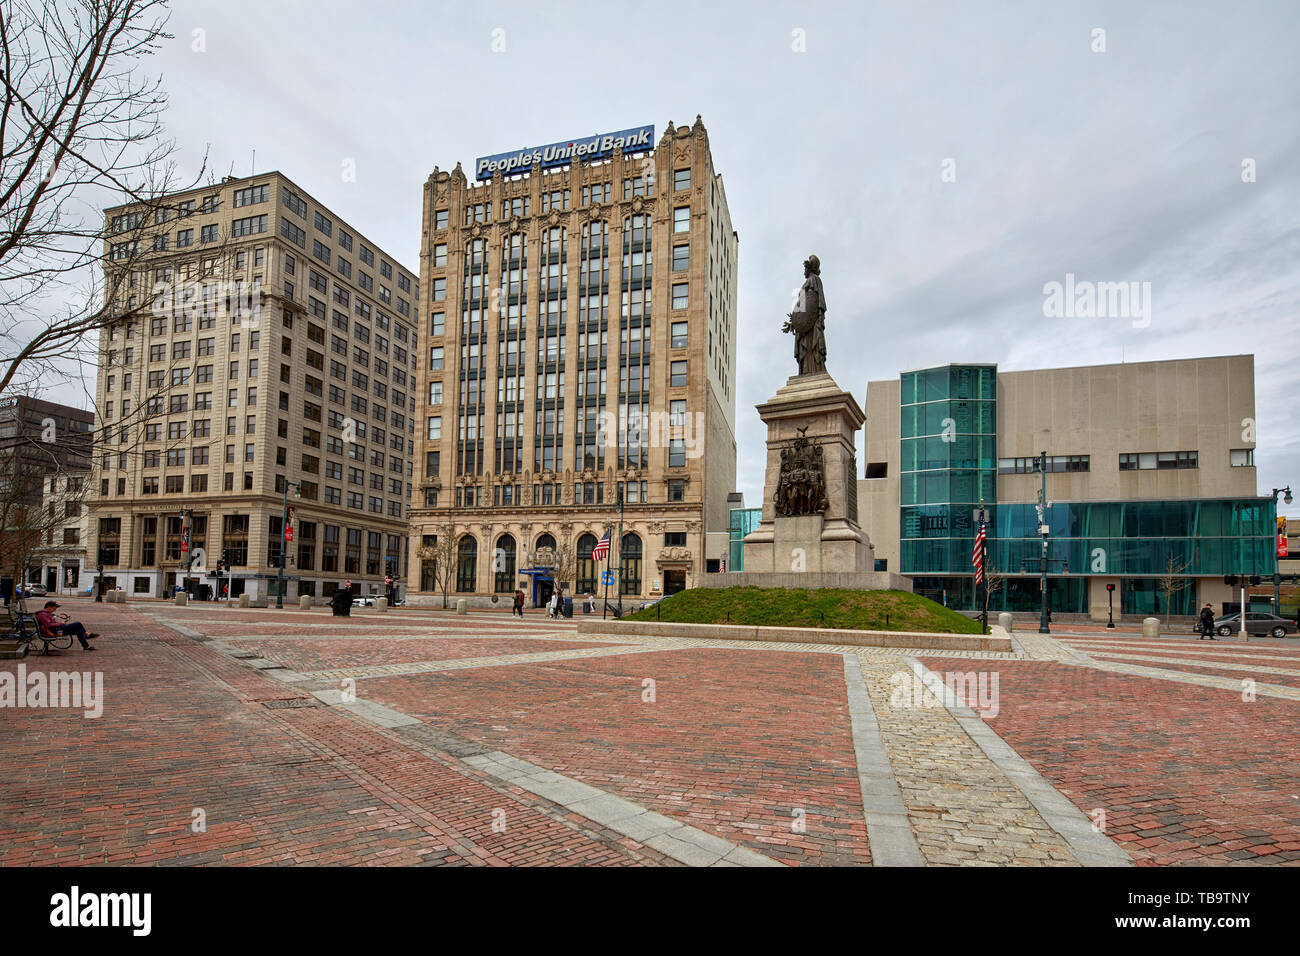 The Time and Temperature Building and People's United Bank and Sailors Monument by  Franklin Simmons in Monument Square in Portland Maine USA, United  - Stock Image